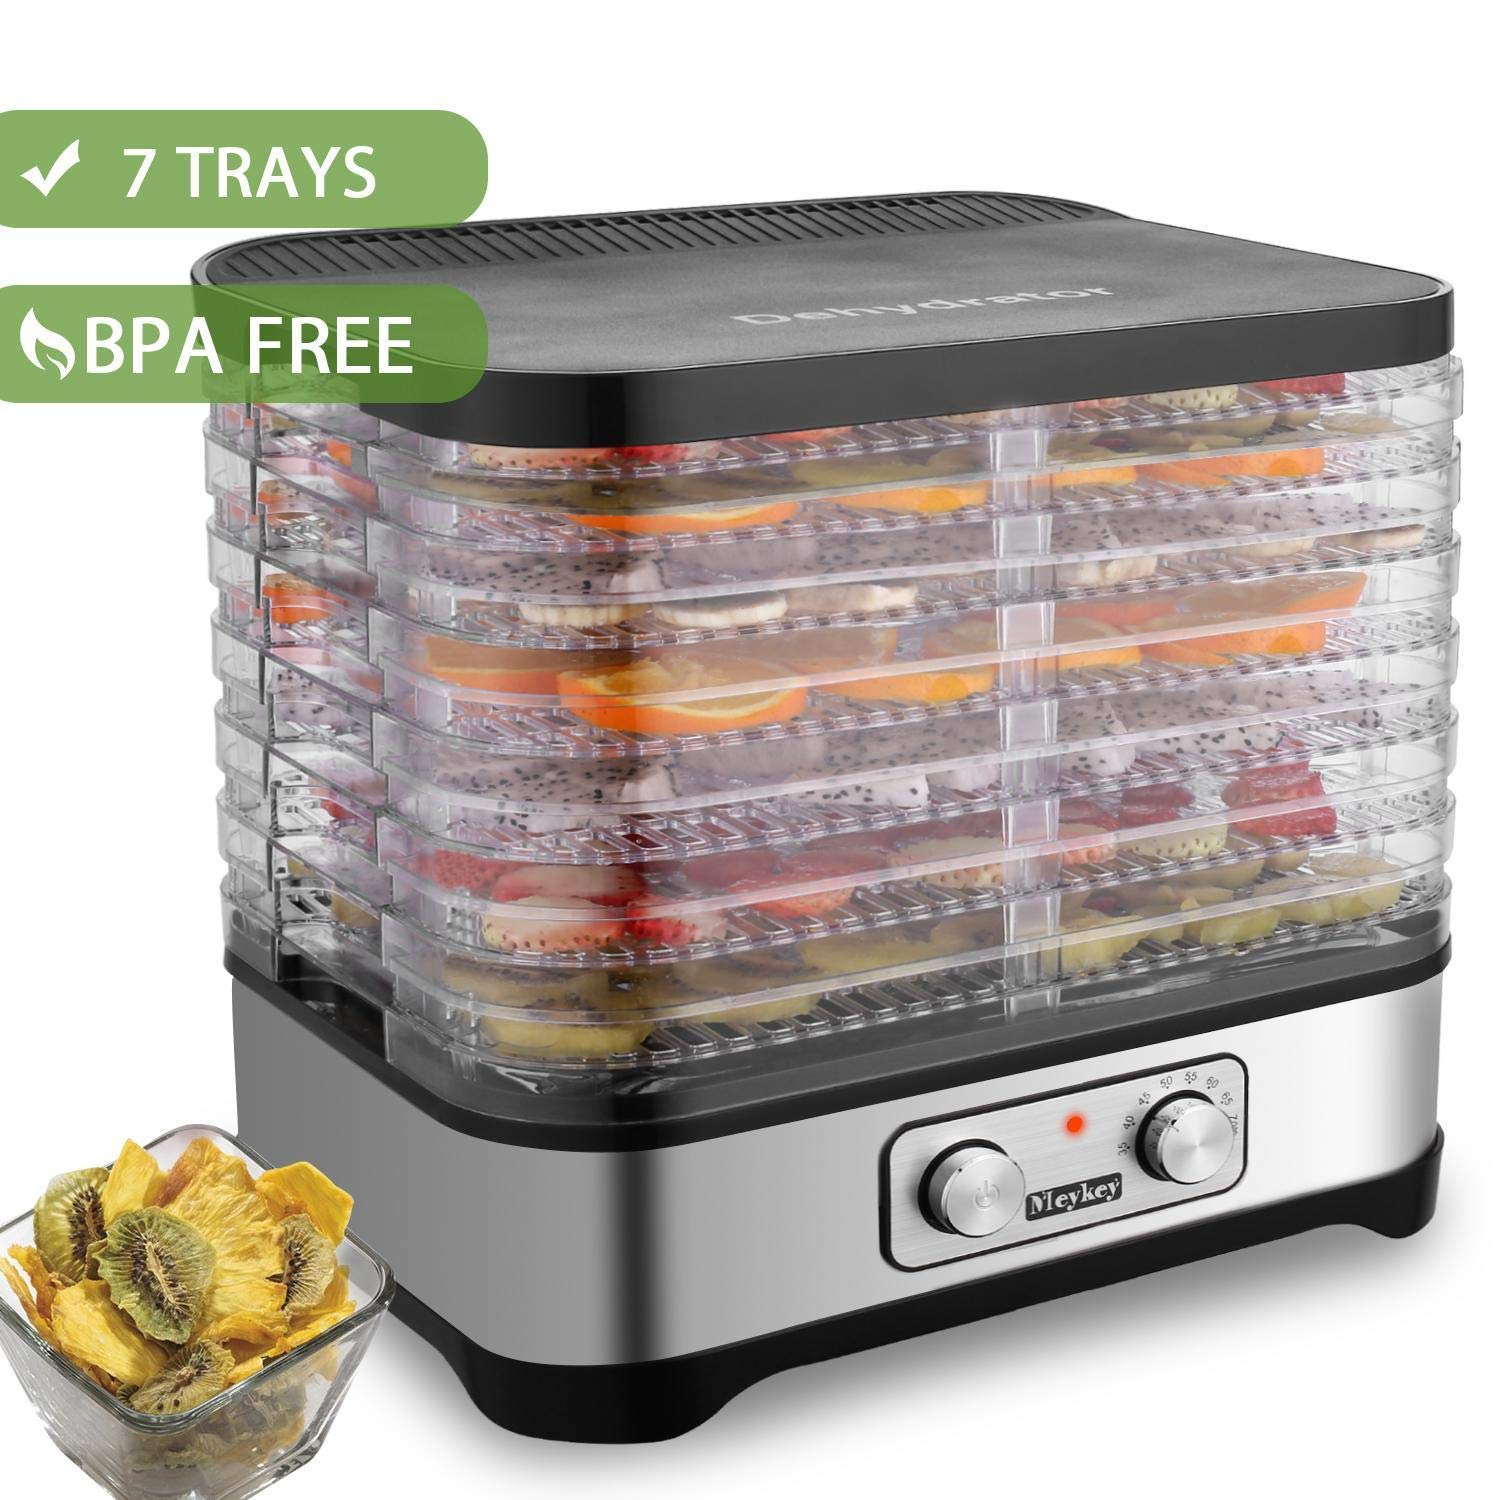 Hauture Food Dehydrator Machine, Electric Food Dryer for Jerky, Beef, Fruit, Vegetable, 7 Trays, Knob BPA Free